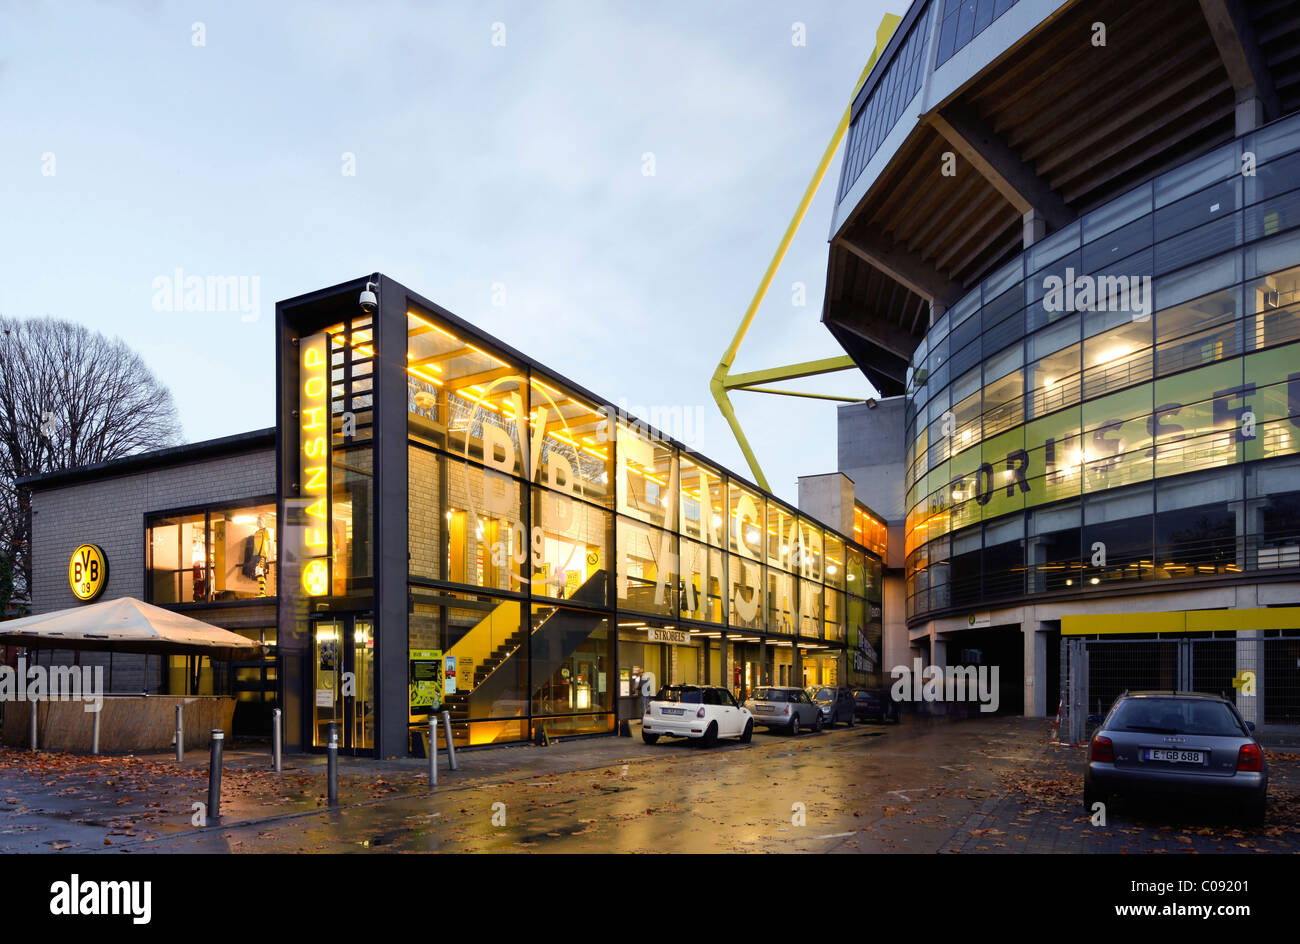 BVB fan shop at the Westfalenstadion stadium, Signal-Iduna-Park, Borussia Dortmund, Dortmund, Ruhrgebiet region - Stock Image